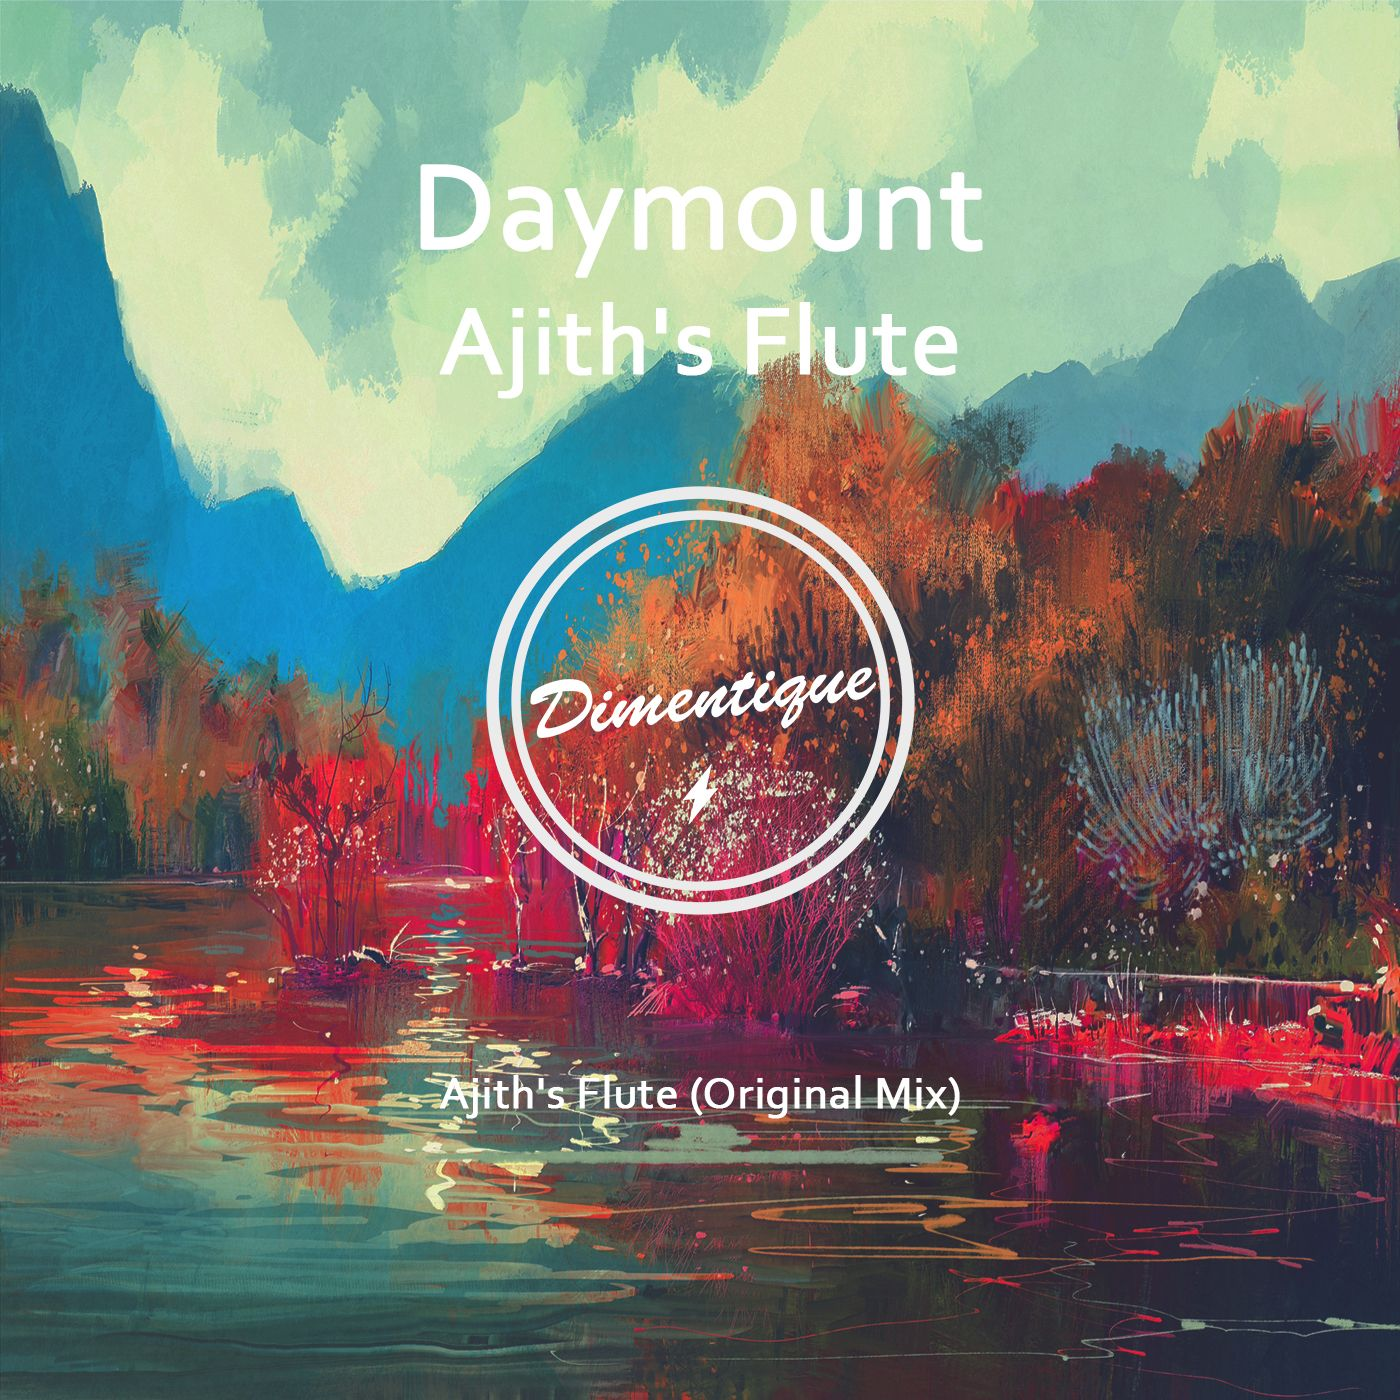 dimentique_new_art_2016_daymount_ajiths_flute.jpg